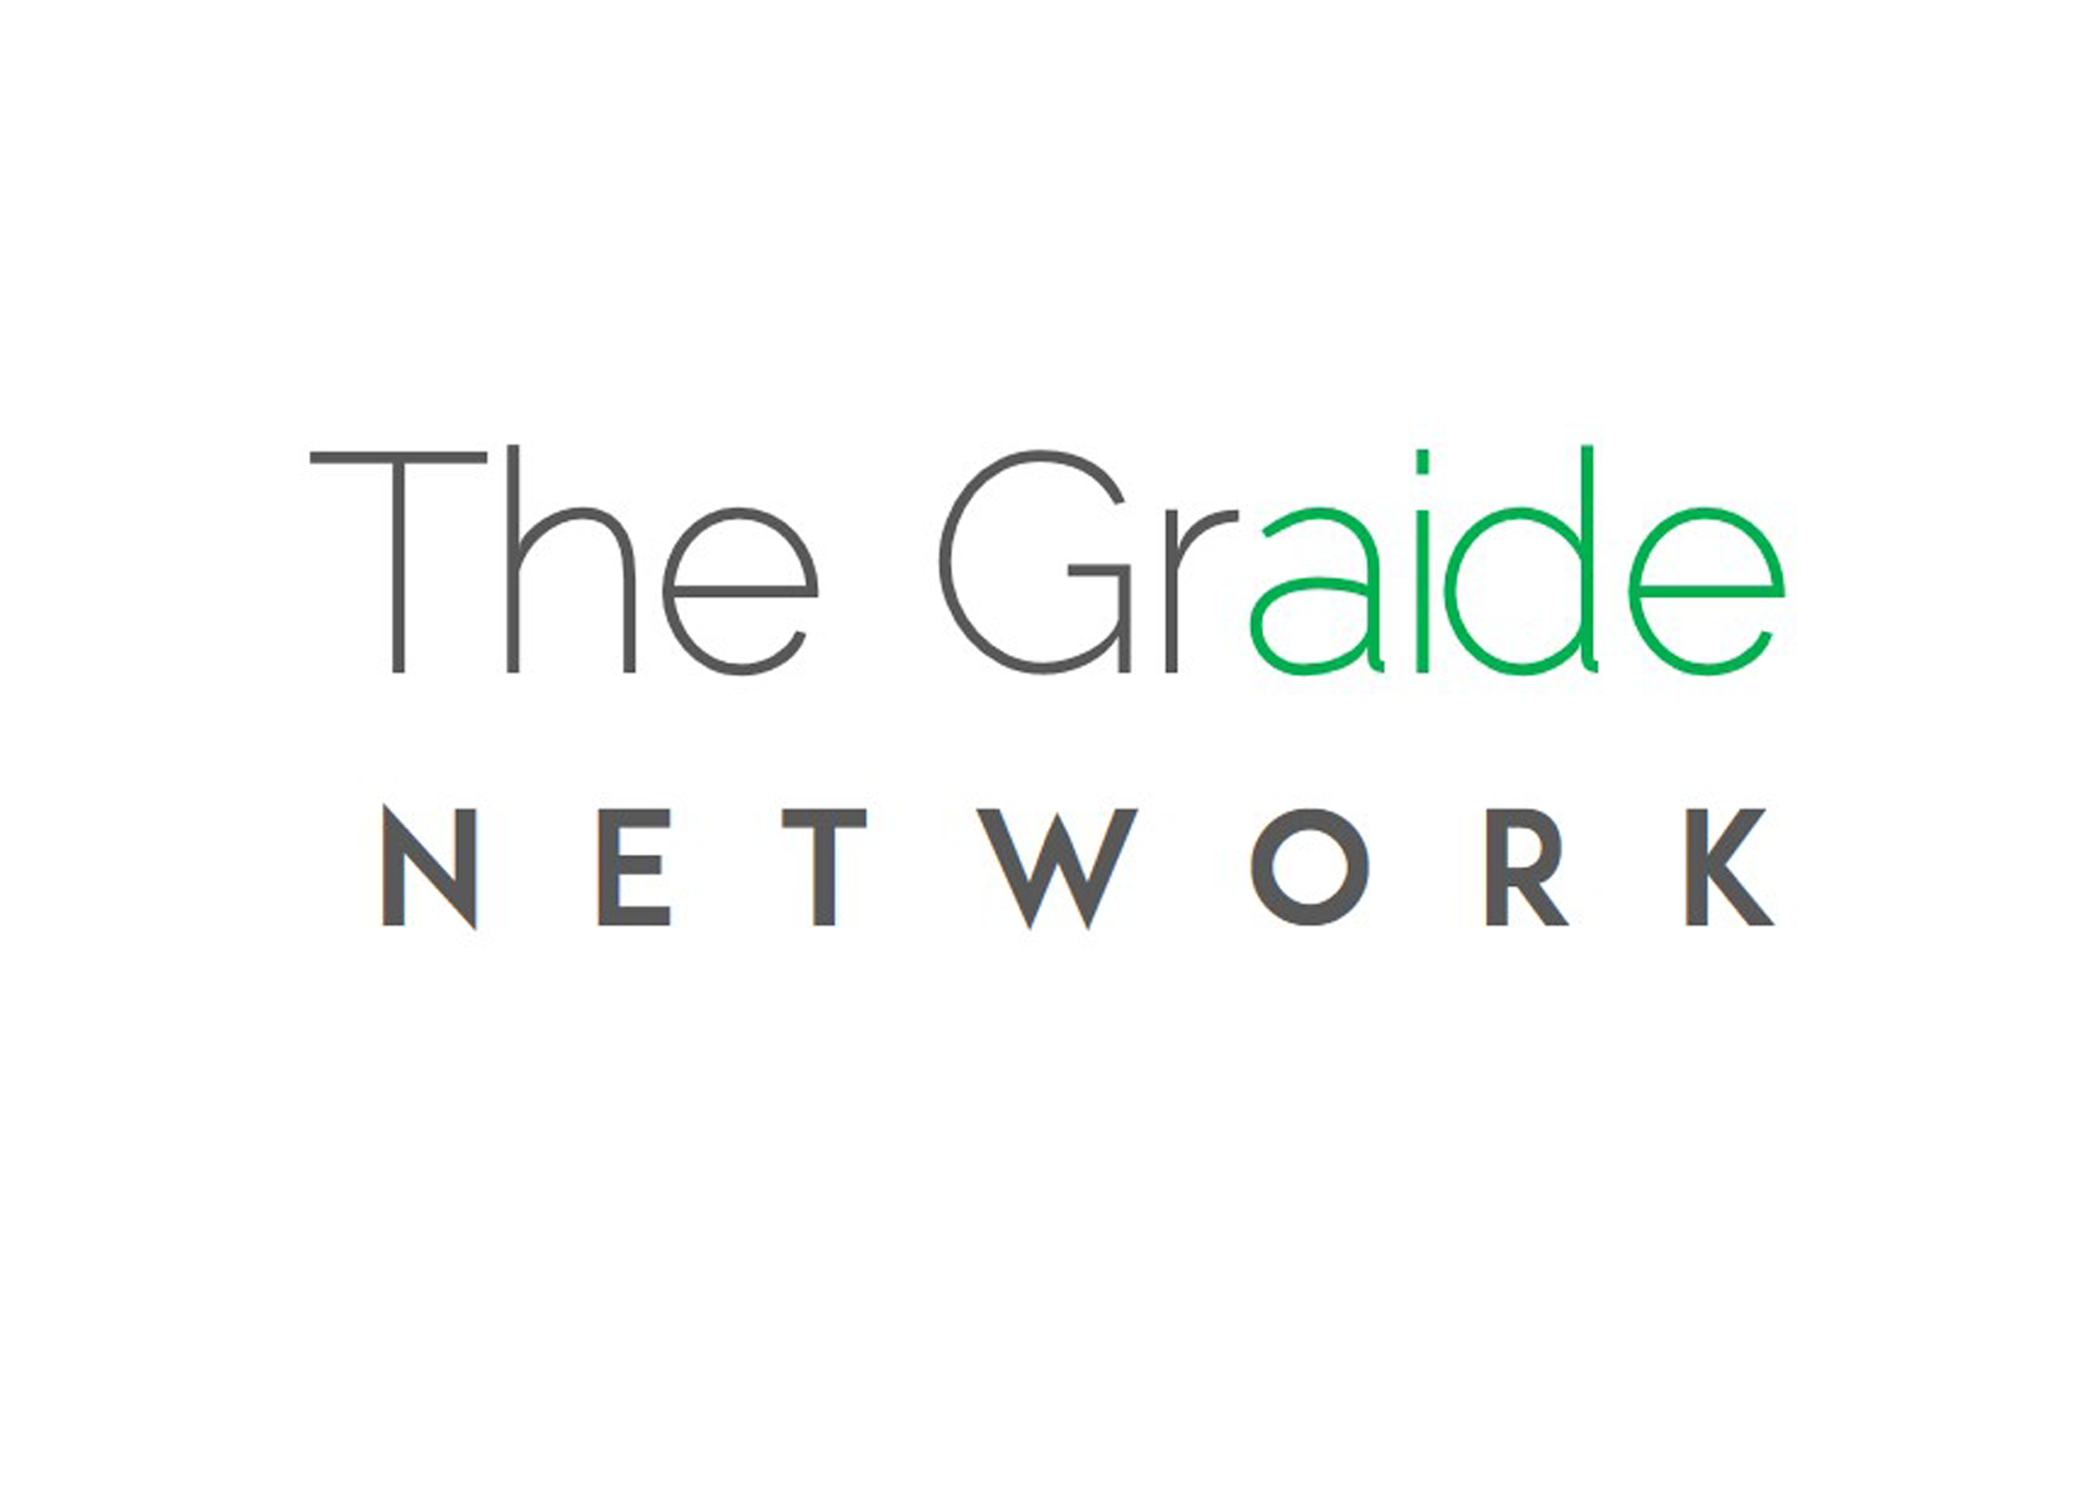 The Graide Network   is building better writers through its online platform of feedback and grading support to K-12 schools.